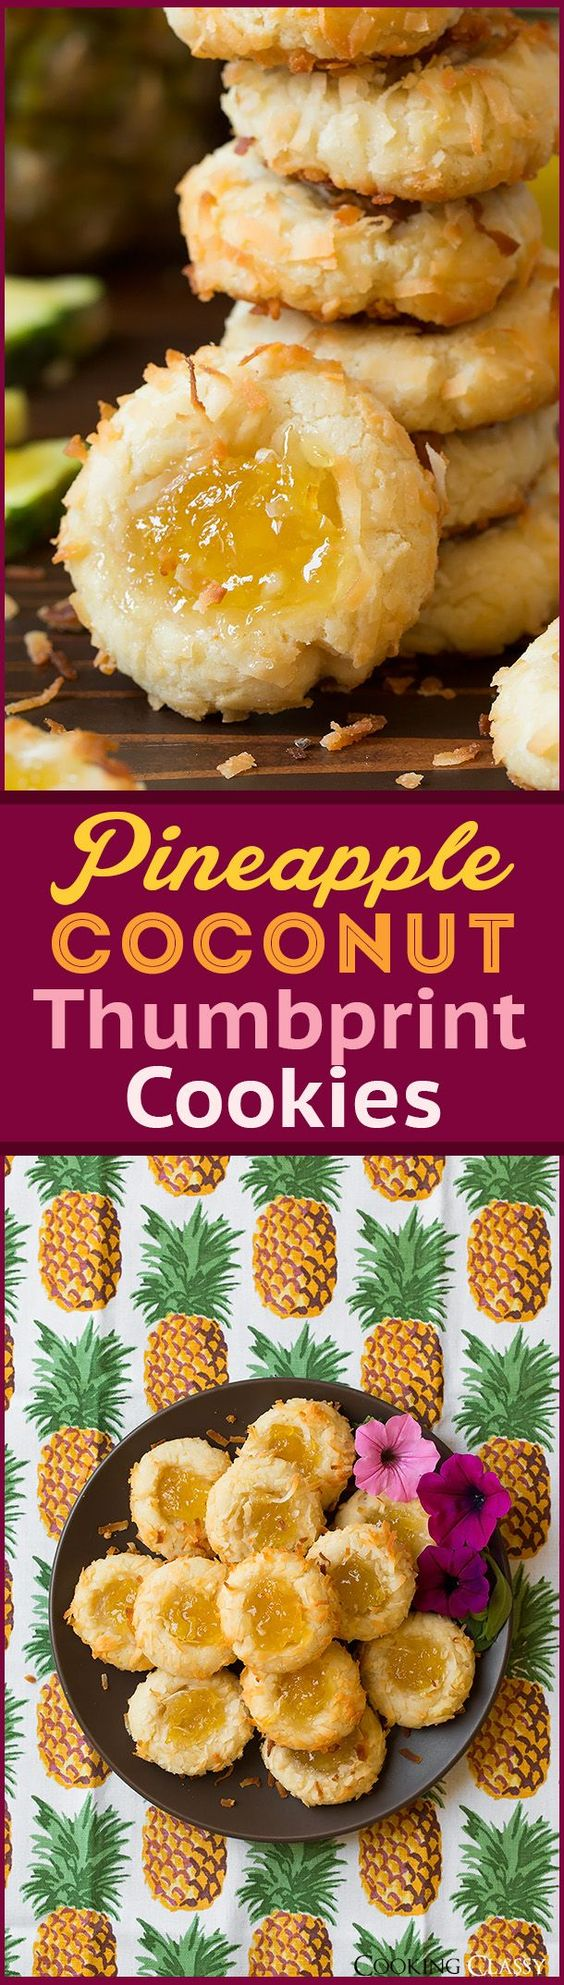 Cookie cookery recipes